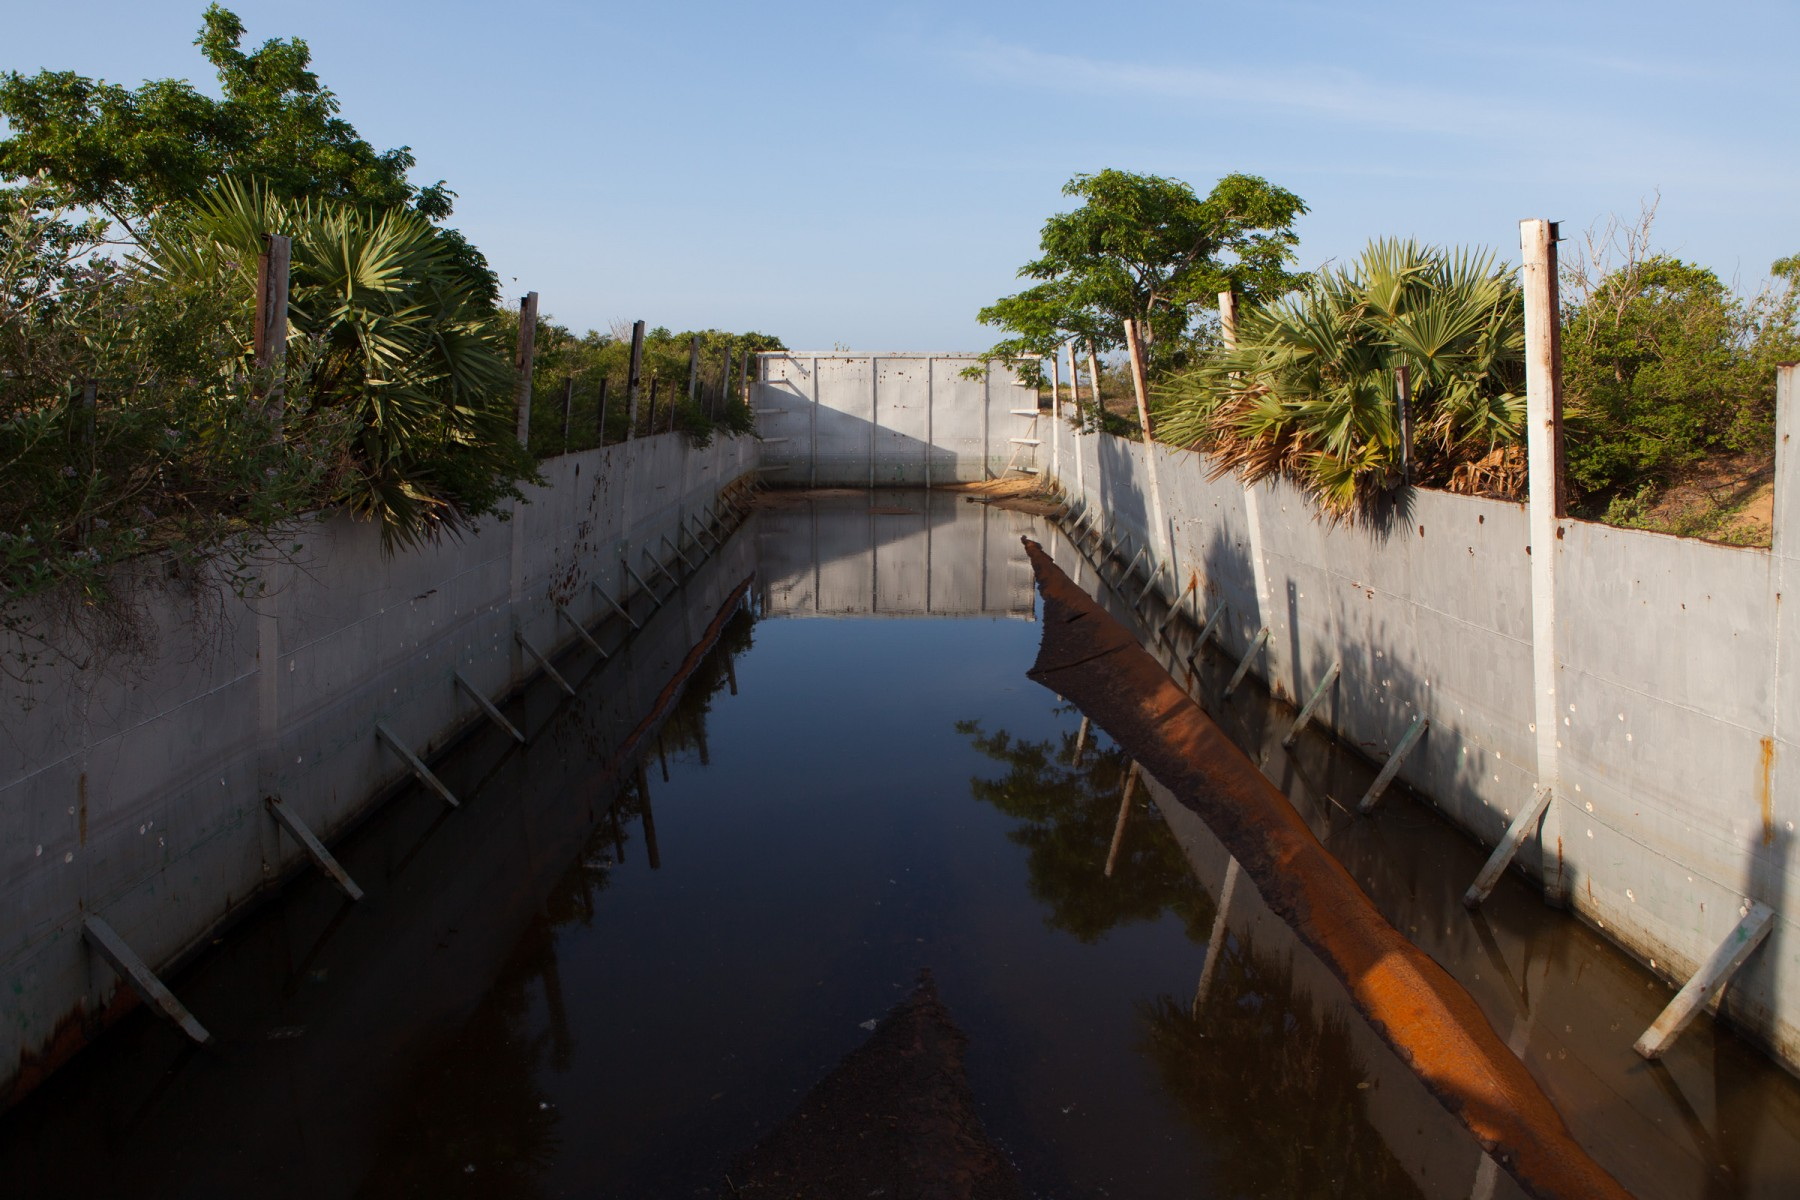 Pool used by the LTTE to test submarines and train divers for guerrilla warfare.